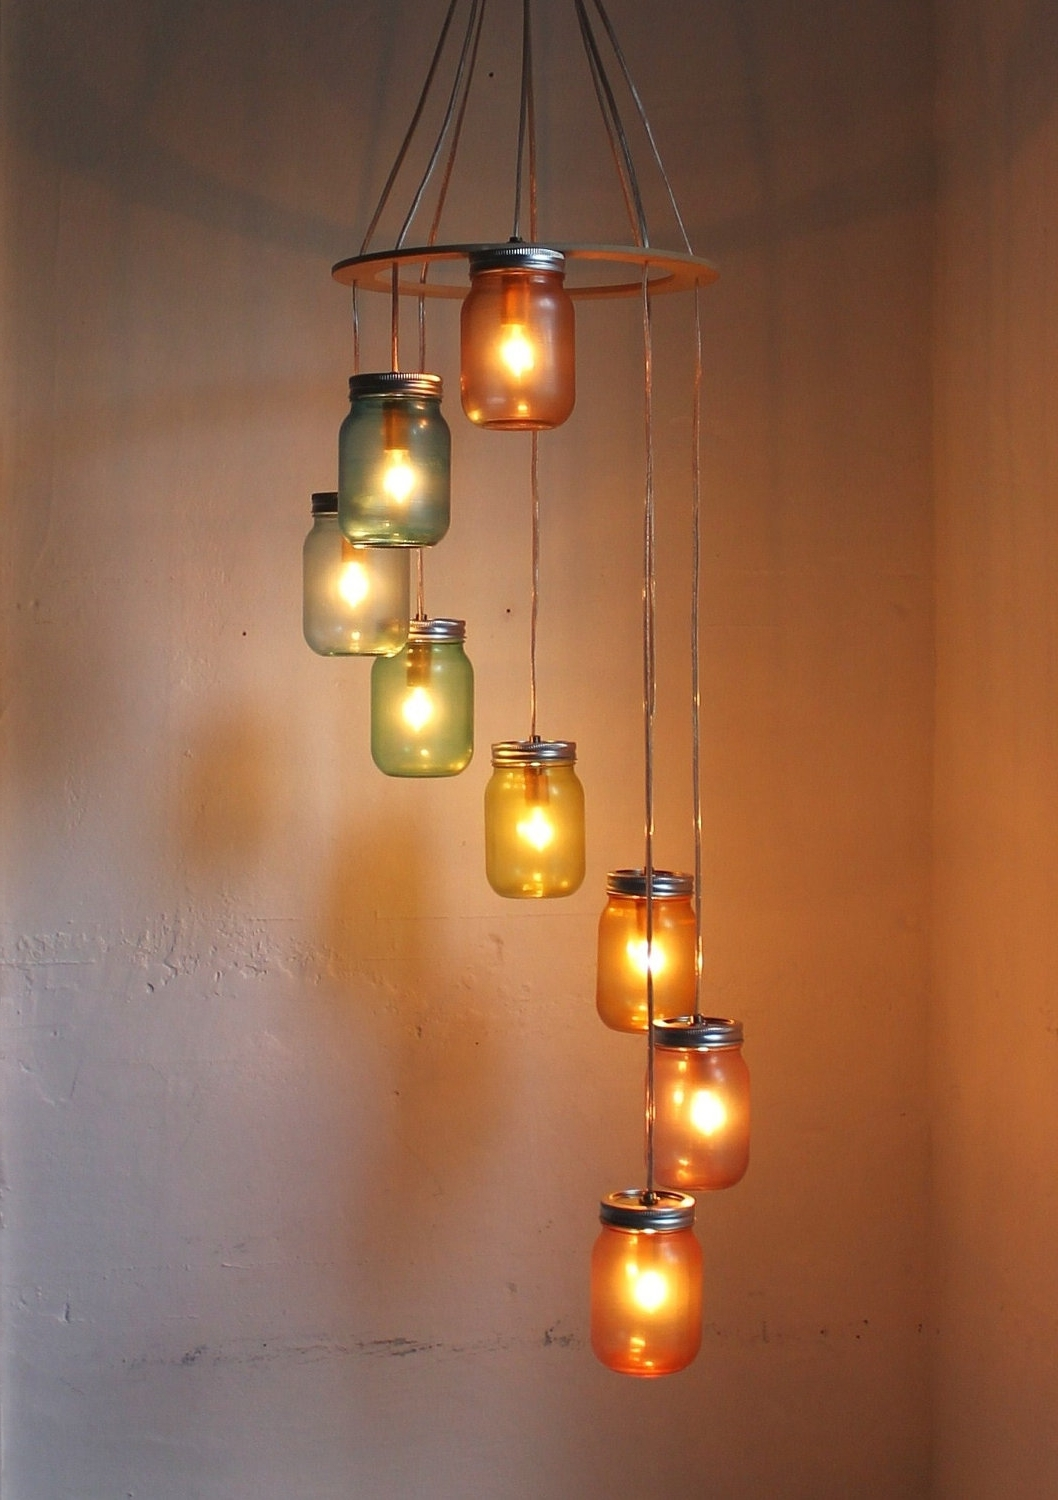 Incredible Cool Hanging Lights Hanging Room Lights Craluxlighting For 2019 Unique Outdoor Hanging Lights (View 5 of 20)